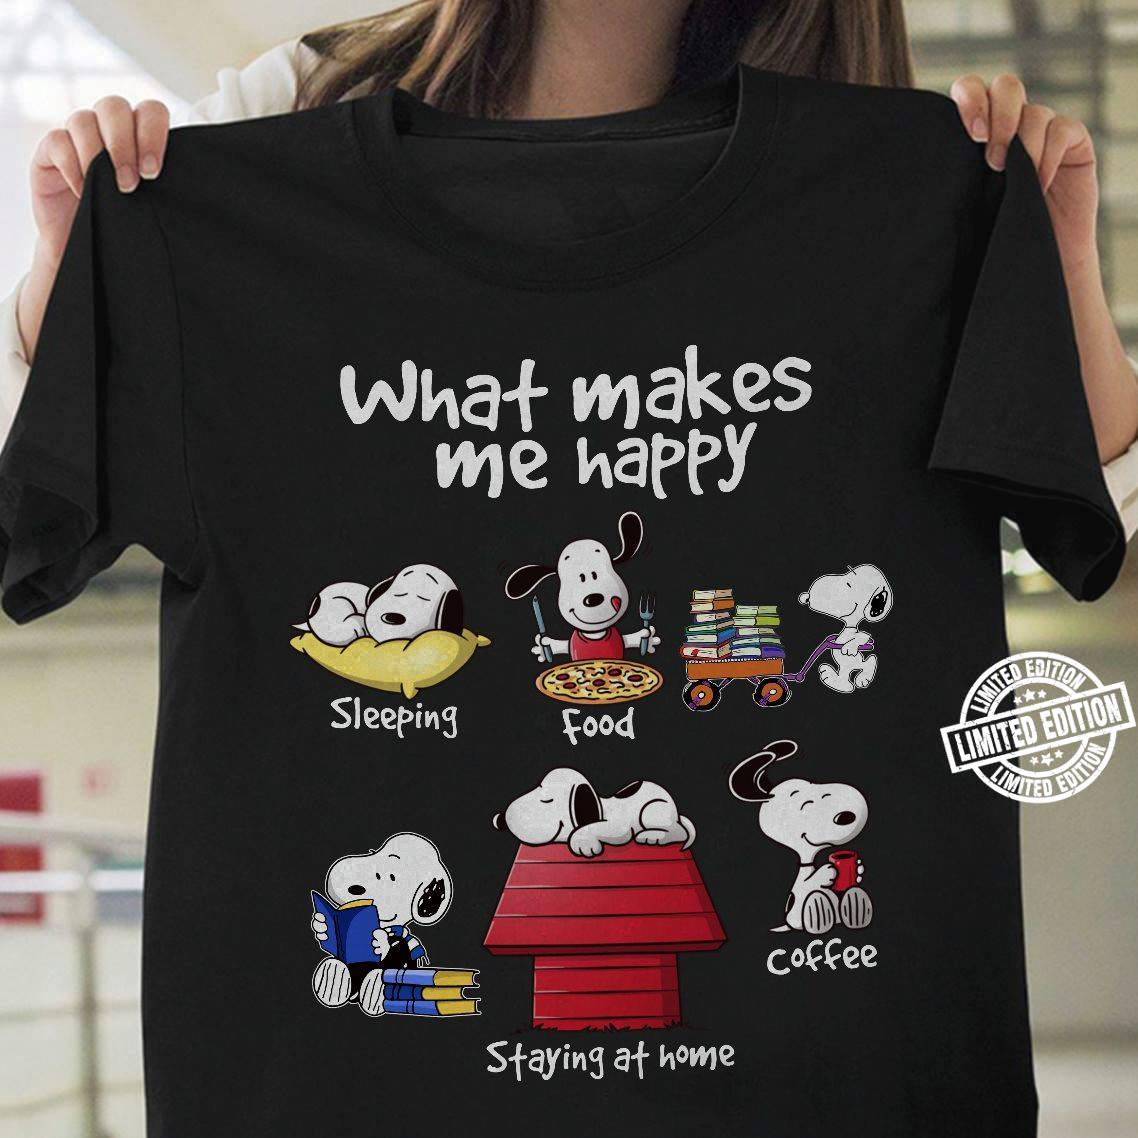 What makes me happy shirt